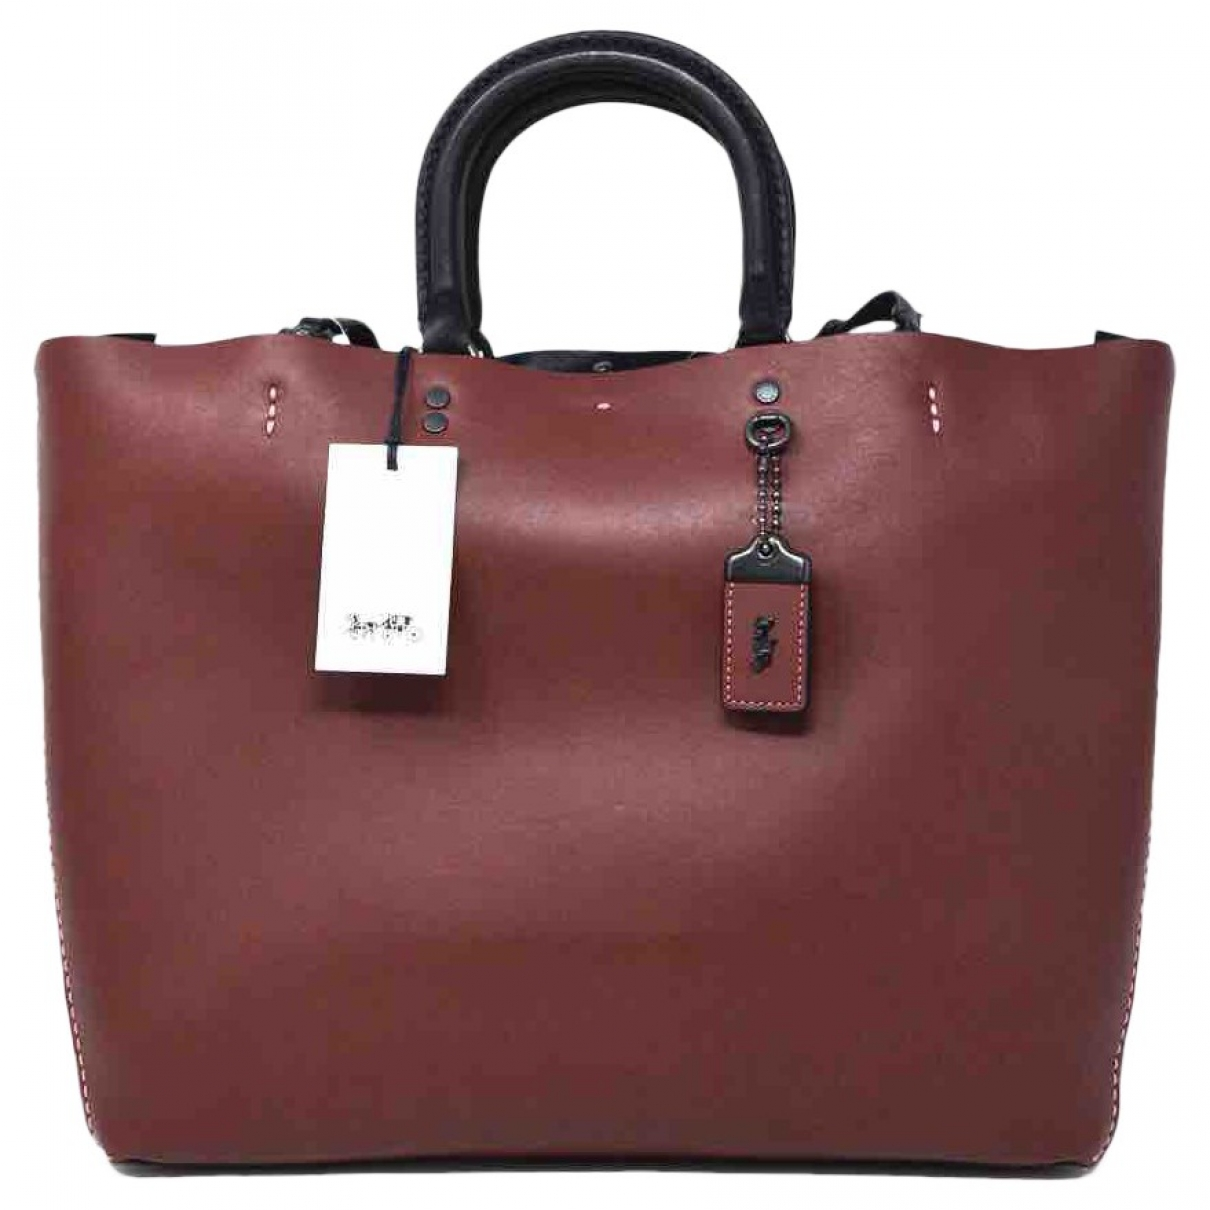 Coach \N Handtasche in  Bordeauxrot Leder